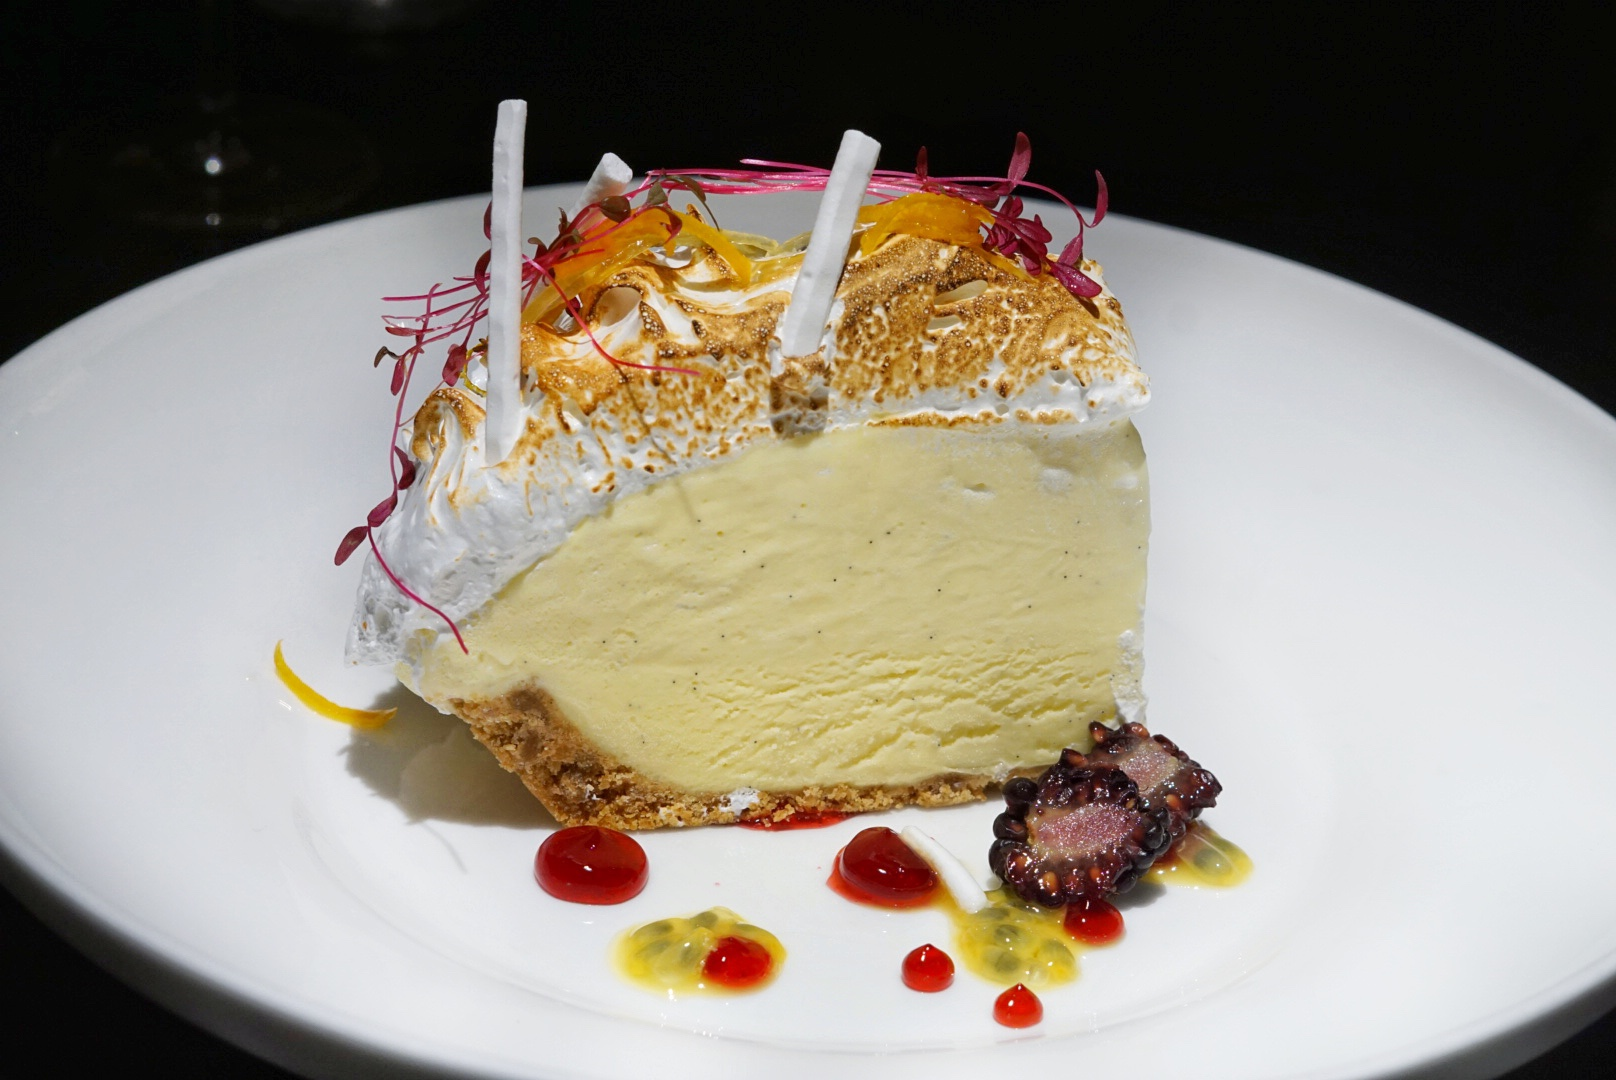 The 'Cayman Garden Pie' is the perfect for date night dessert because it's loaded with lemon meringue ice cream and topped with toasted meringue, hibiscus gel and micro flowers.